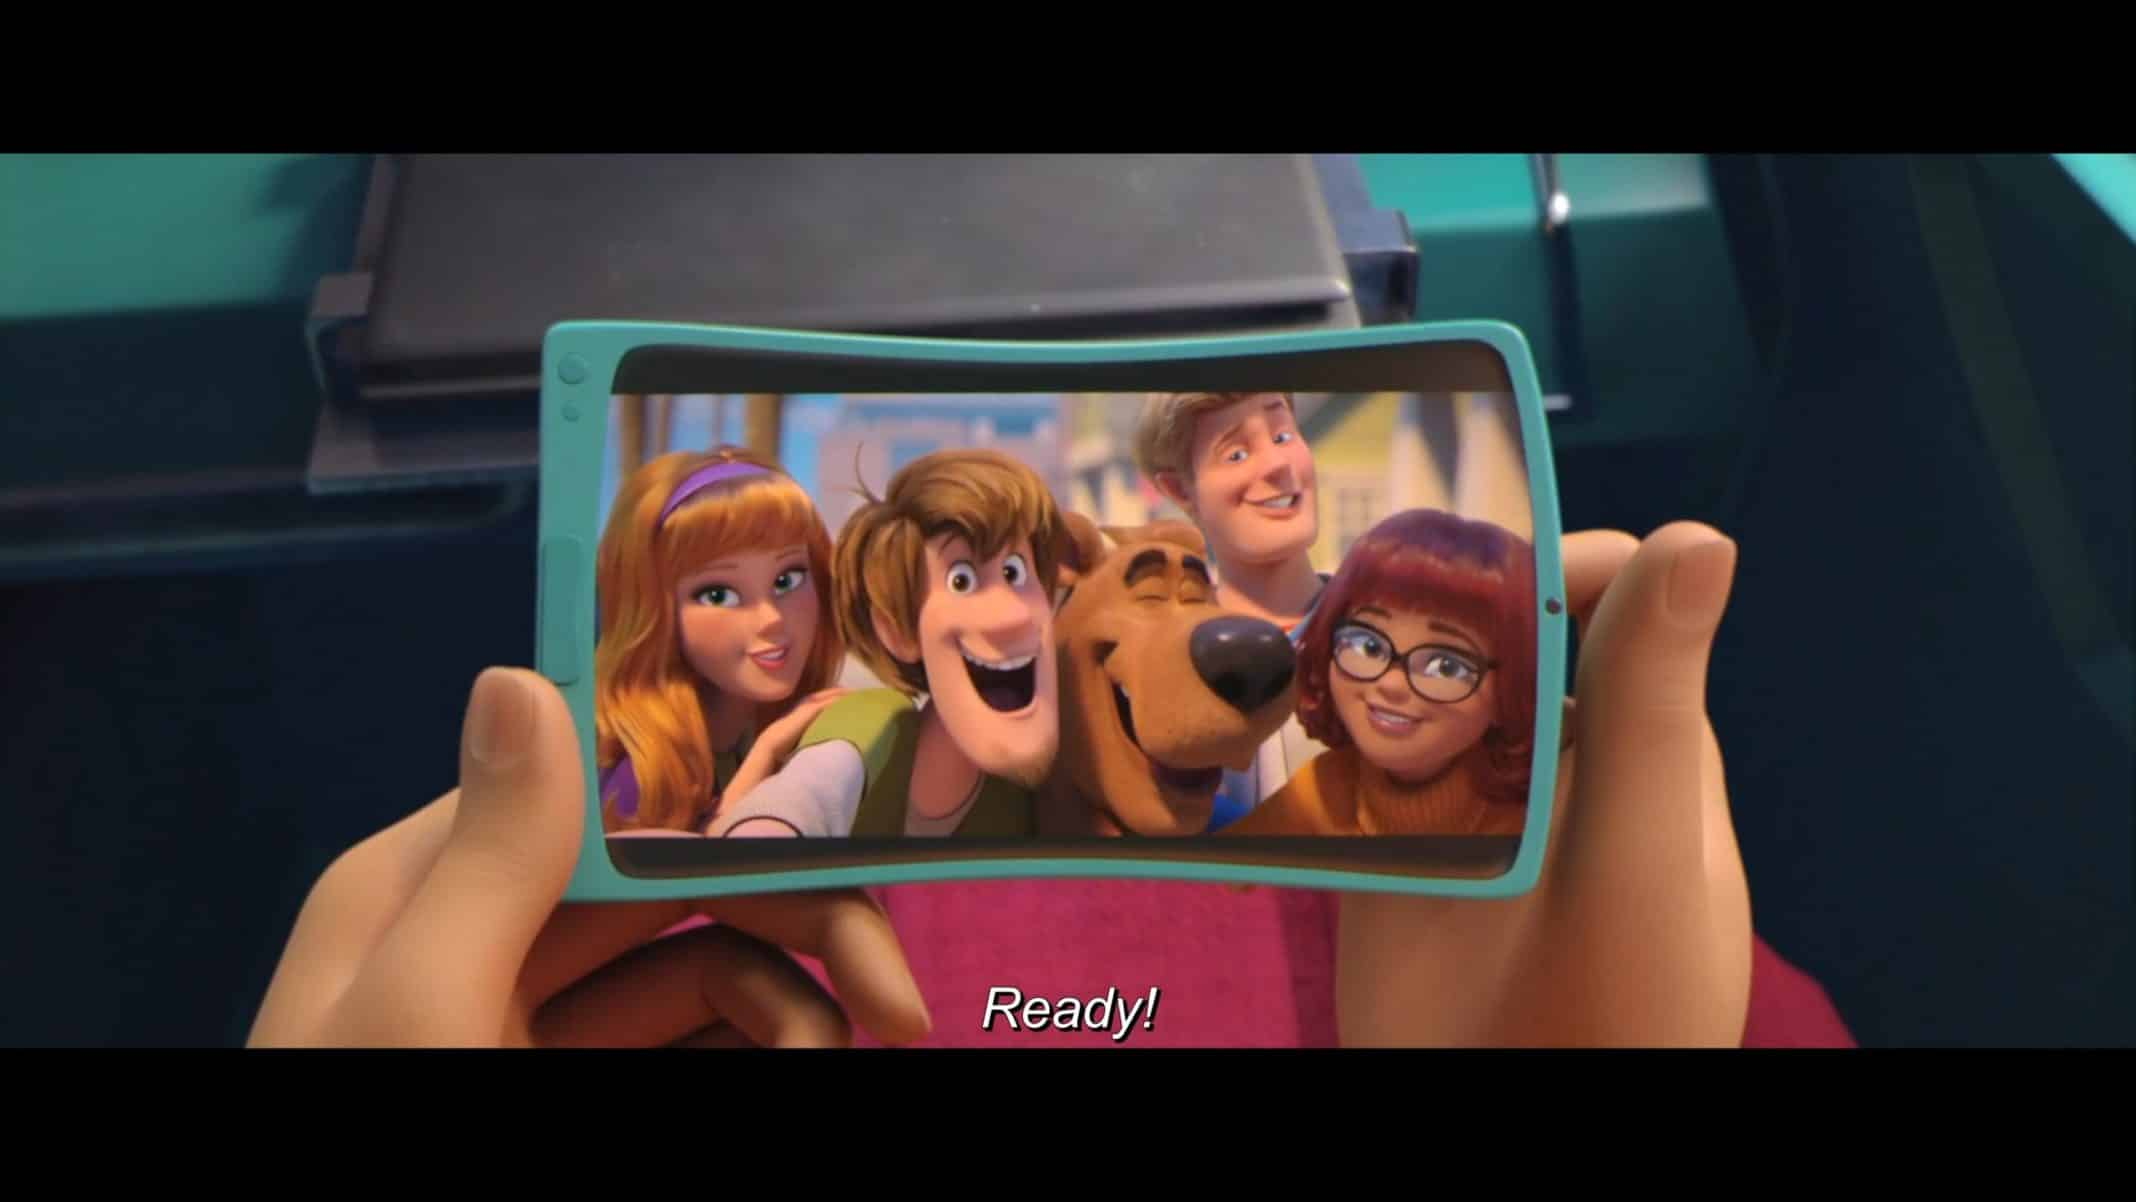 Daphne (Amanda Seyfried), Shaggy (Will Forte), Scooby (Frank Wlker), Fred (Zac Efron), and Velma (Gina Rodriguez) taking a picture together.